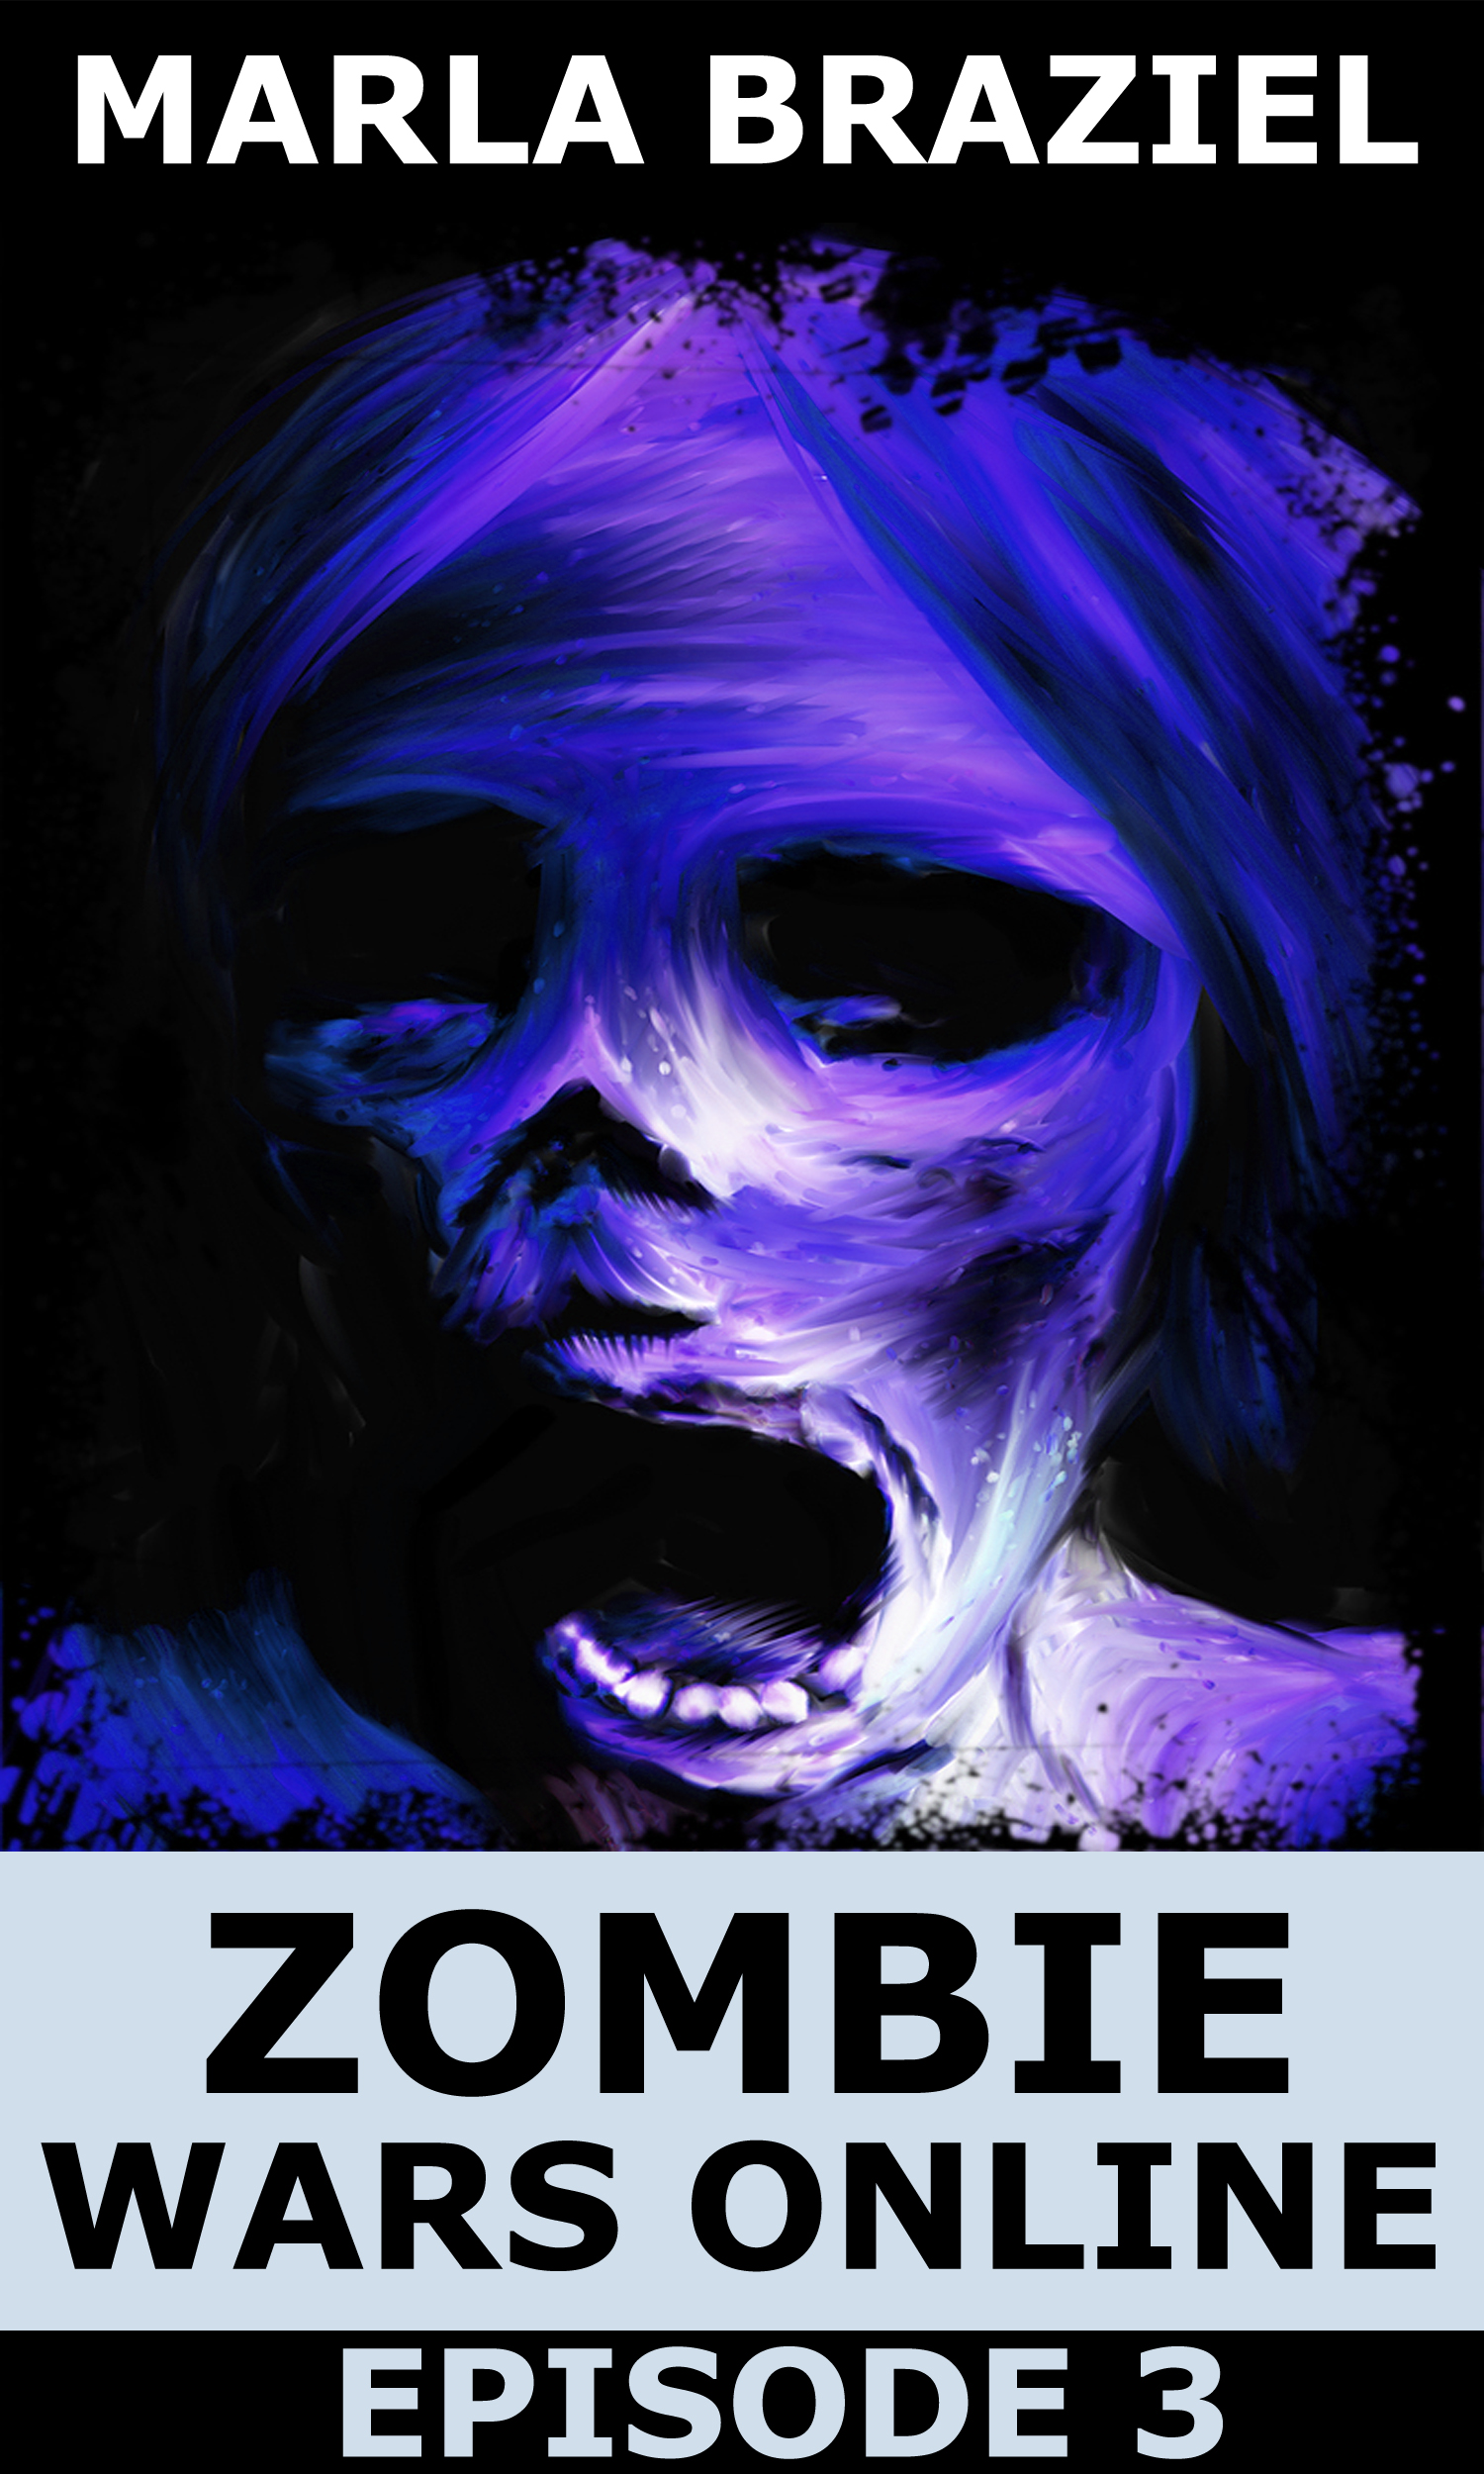 Zombie Wars Online: Episode 3 By: Marla Braziel